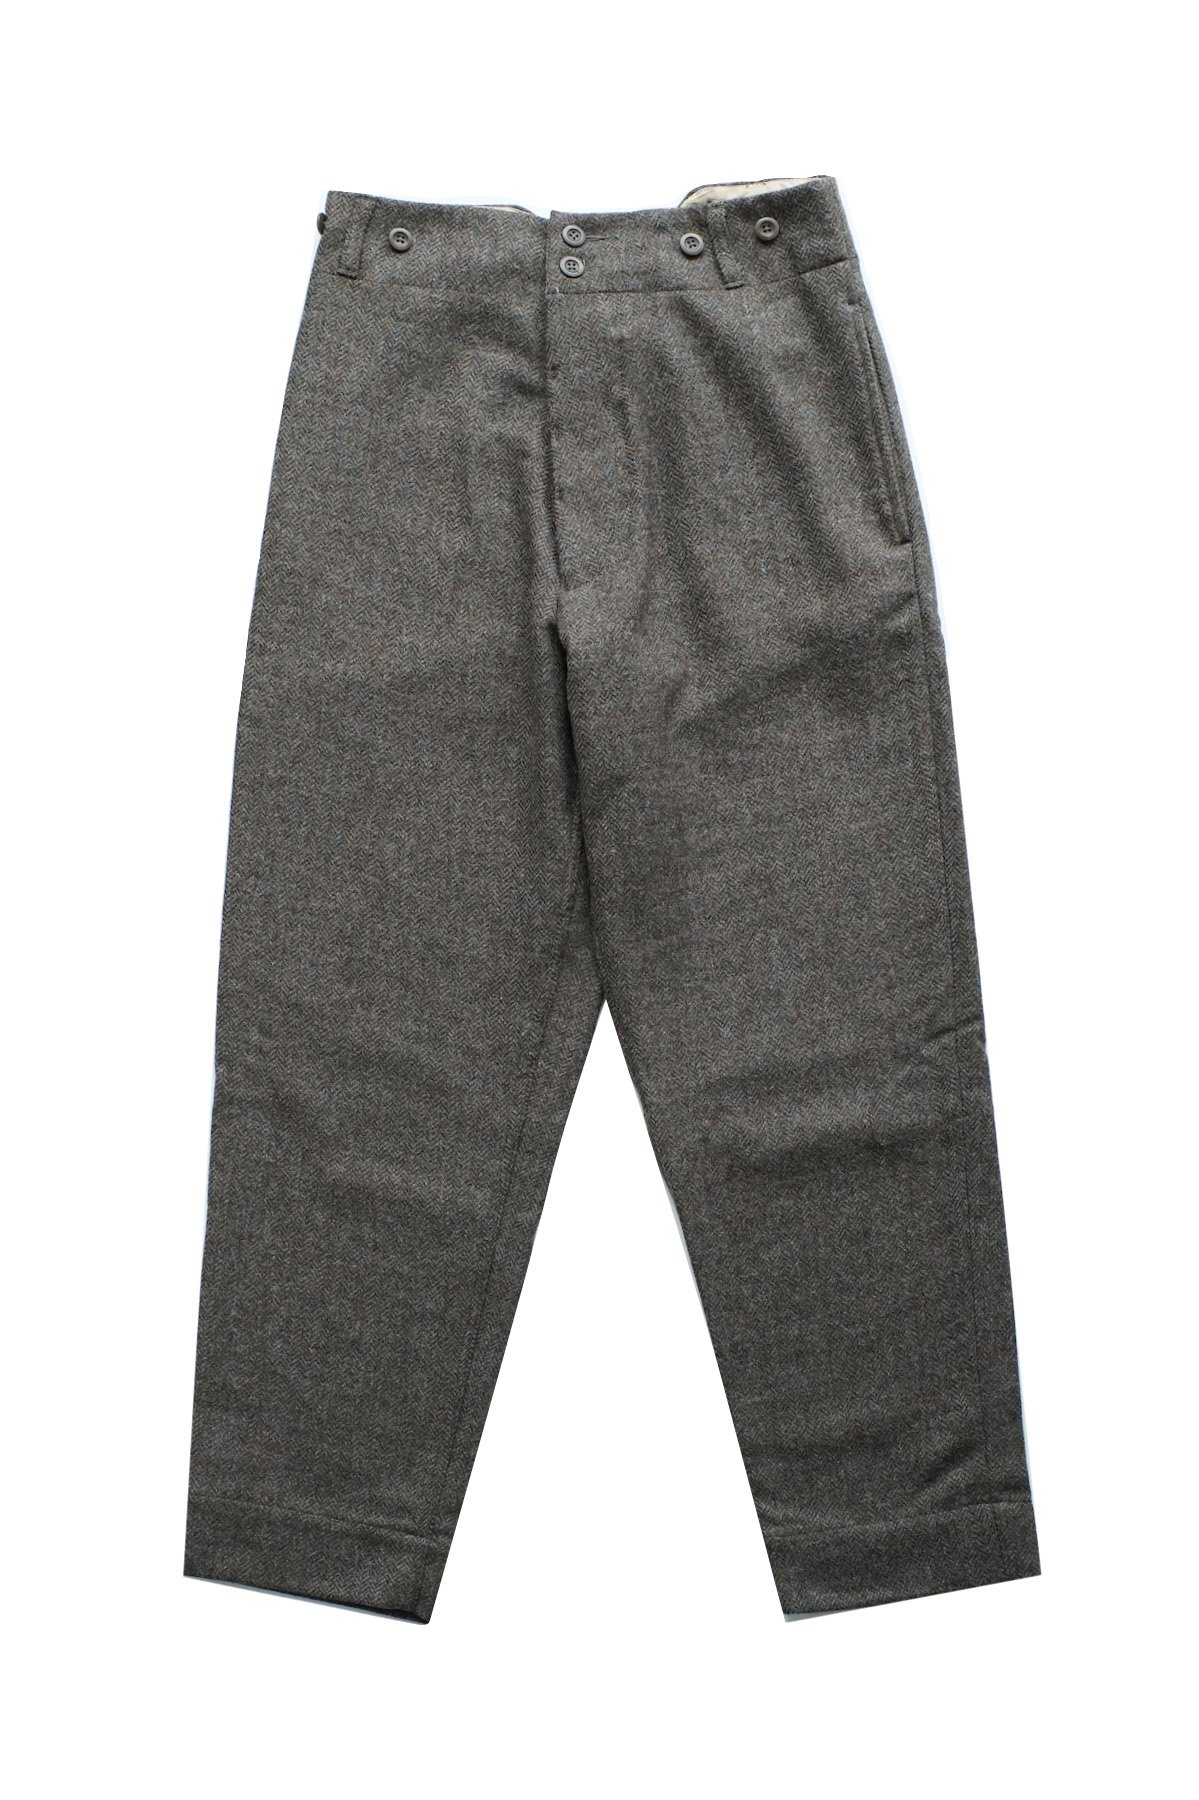 Nigel Cabourn - WOOL FARM PANT HERRINGBONE WOOL GREEN - PRICE 52,800 tax-in